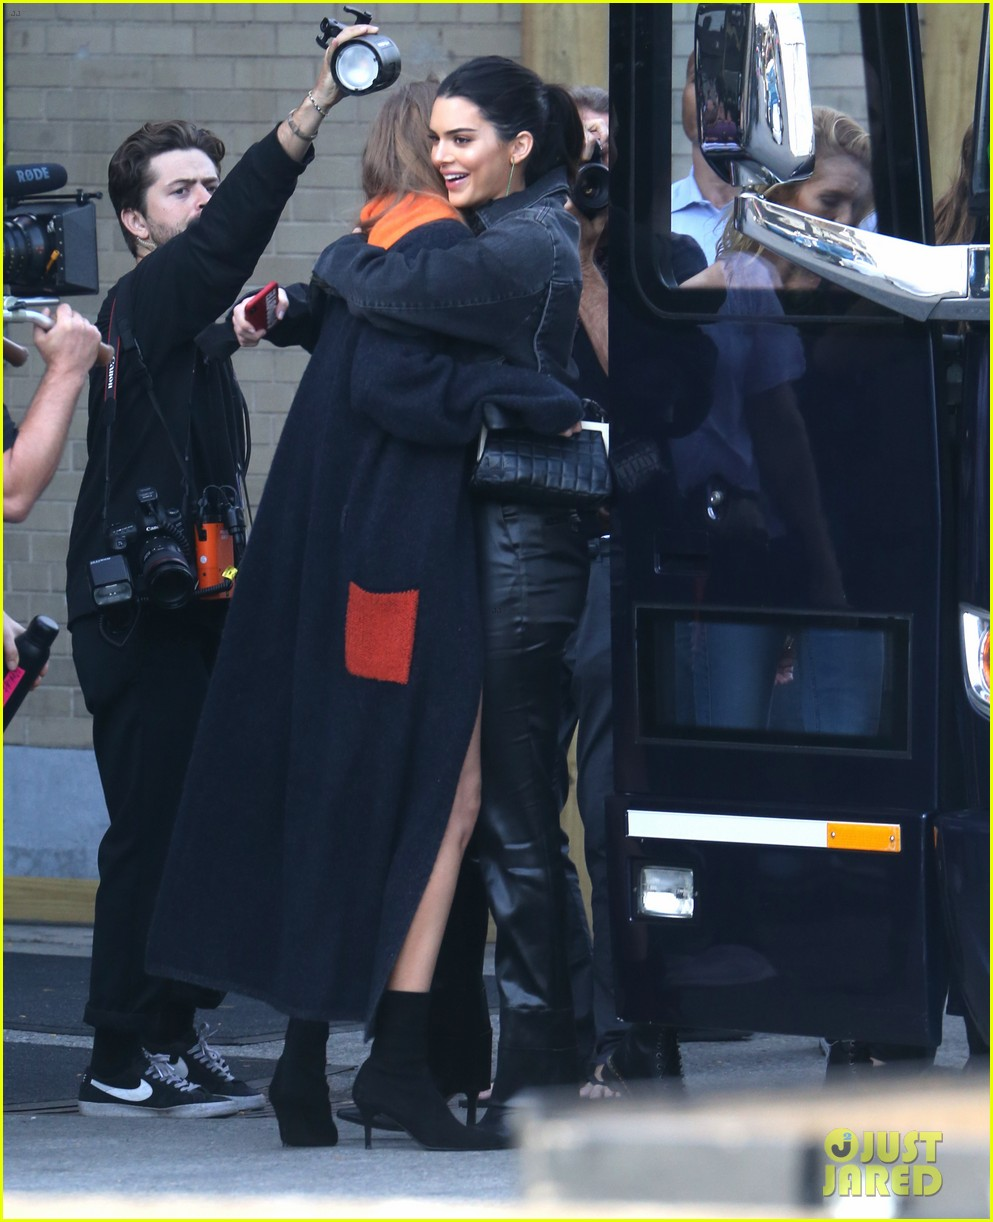 gigi hadid and kendall jenner share a hug outside of victorias secret fashion show rehearsals 03